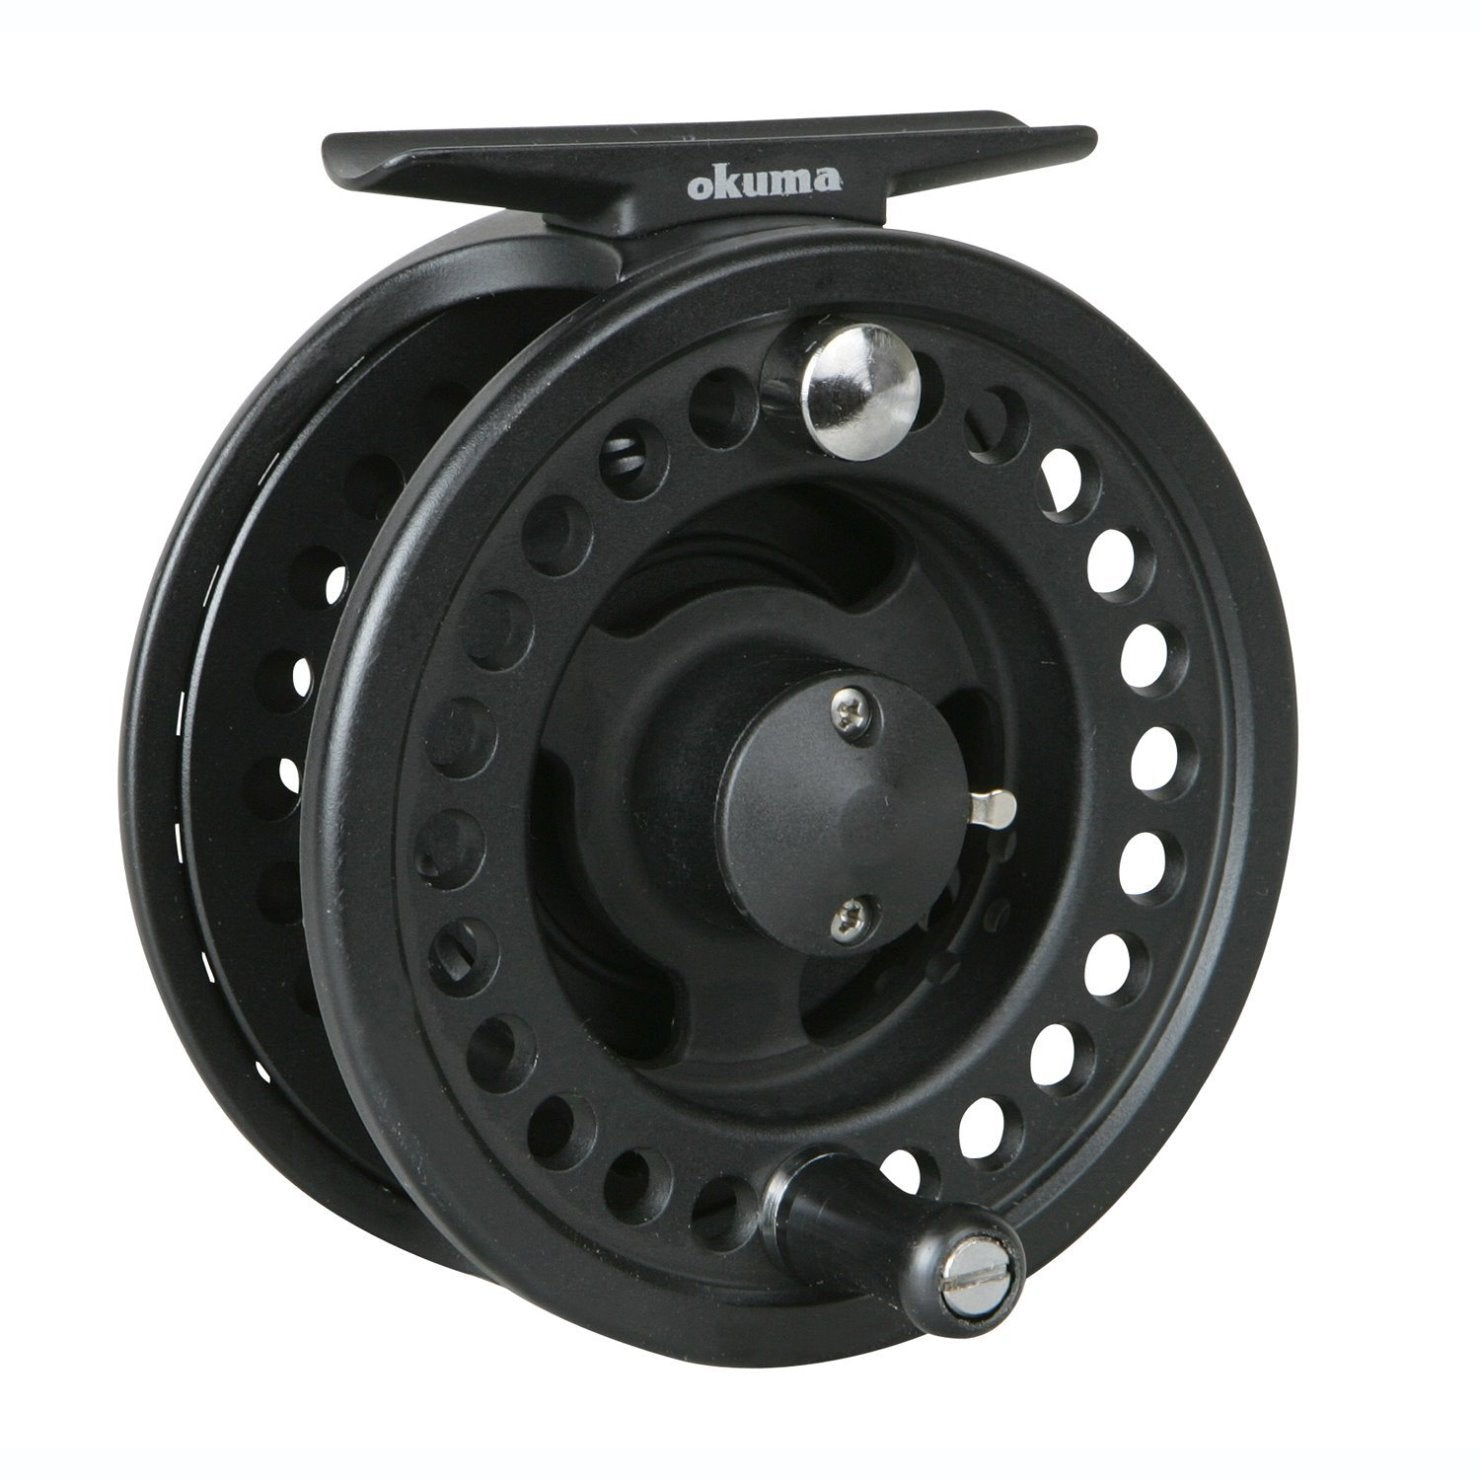 Okuma Integrity Fly Reels